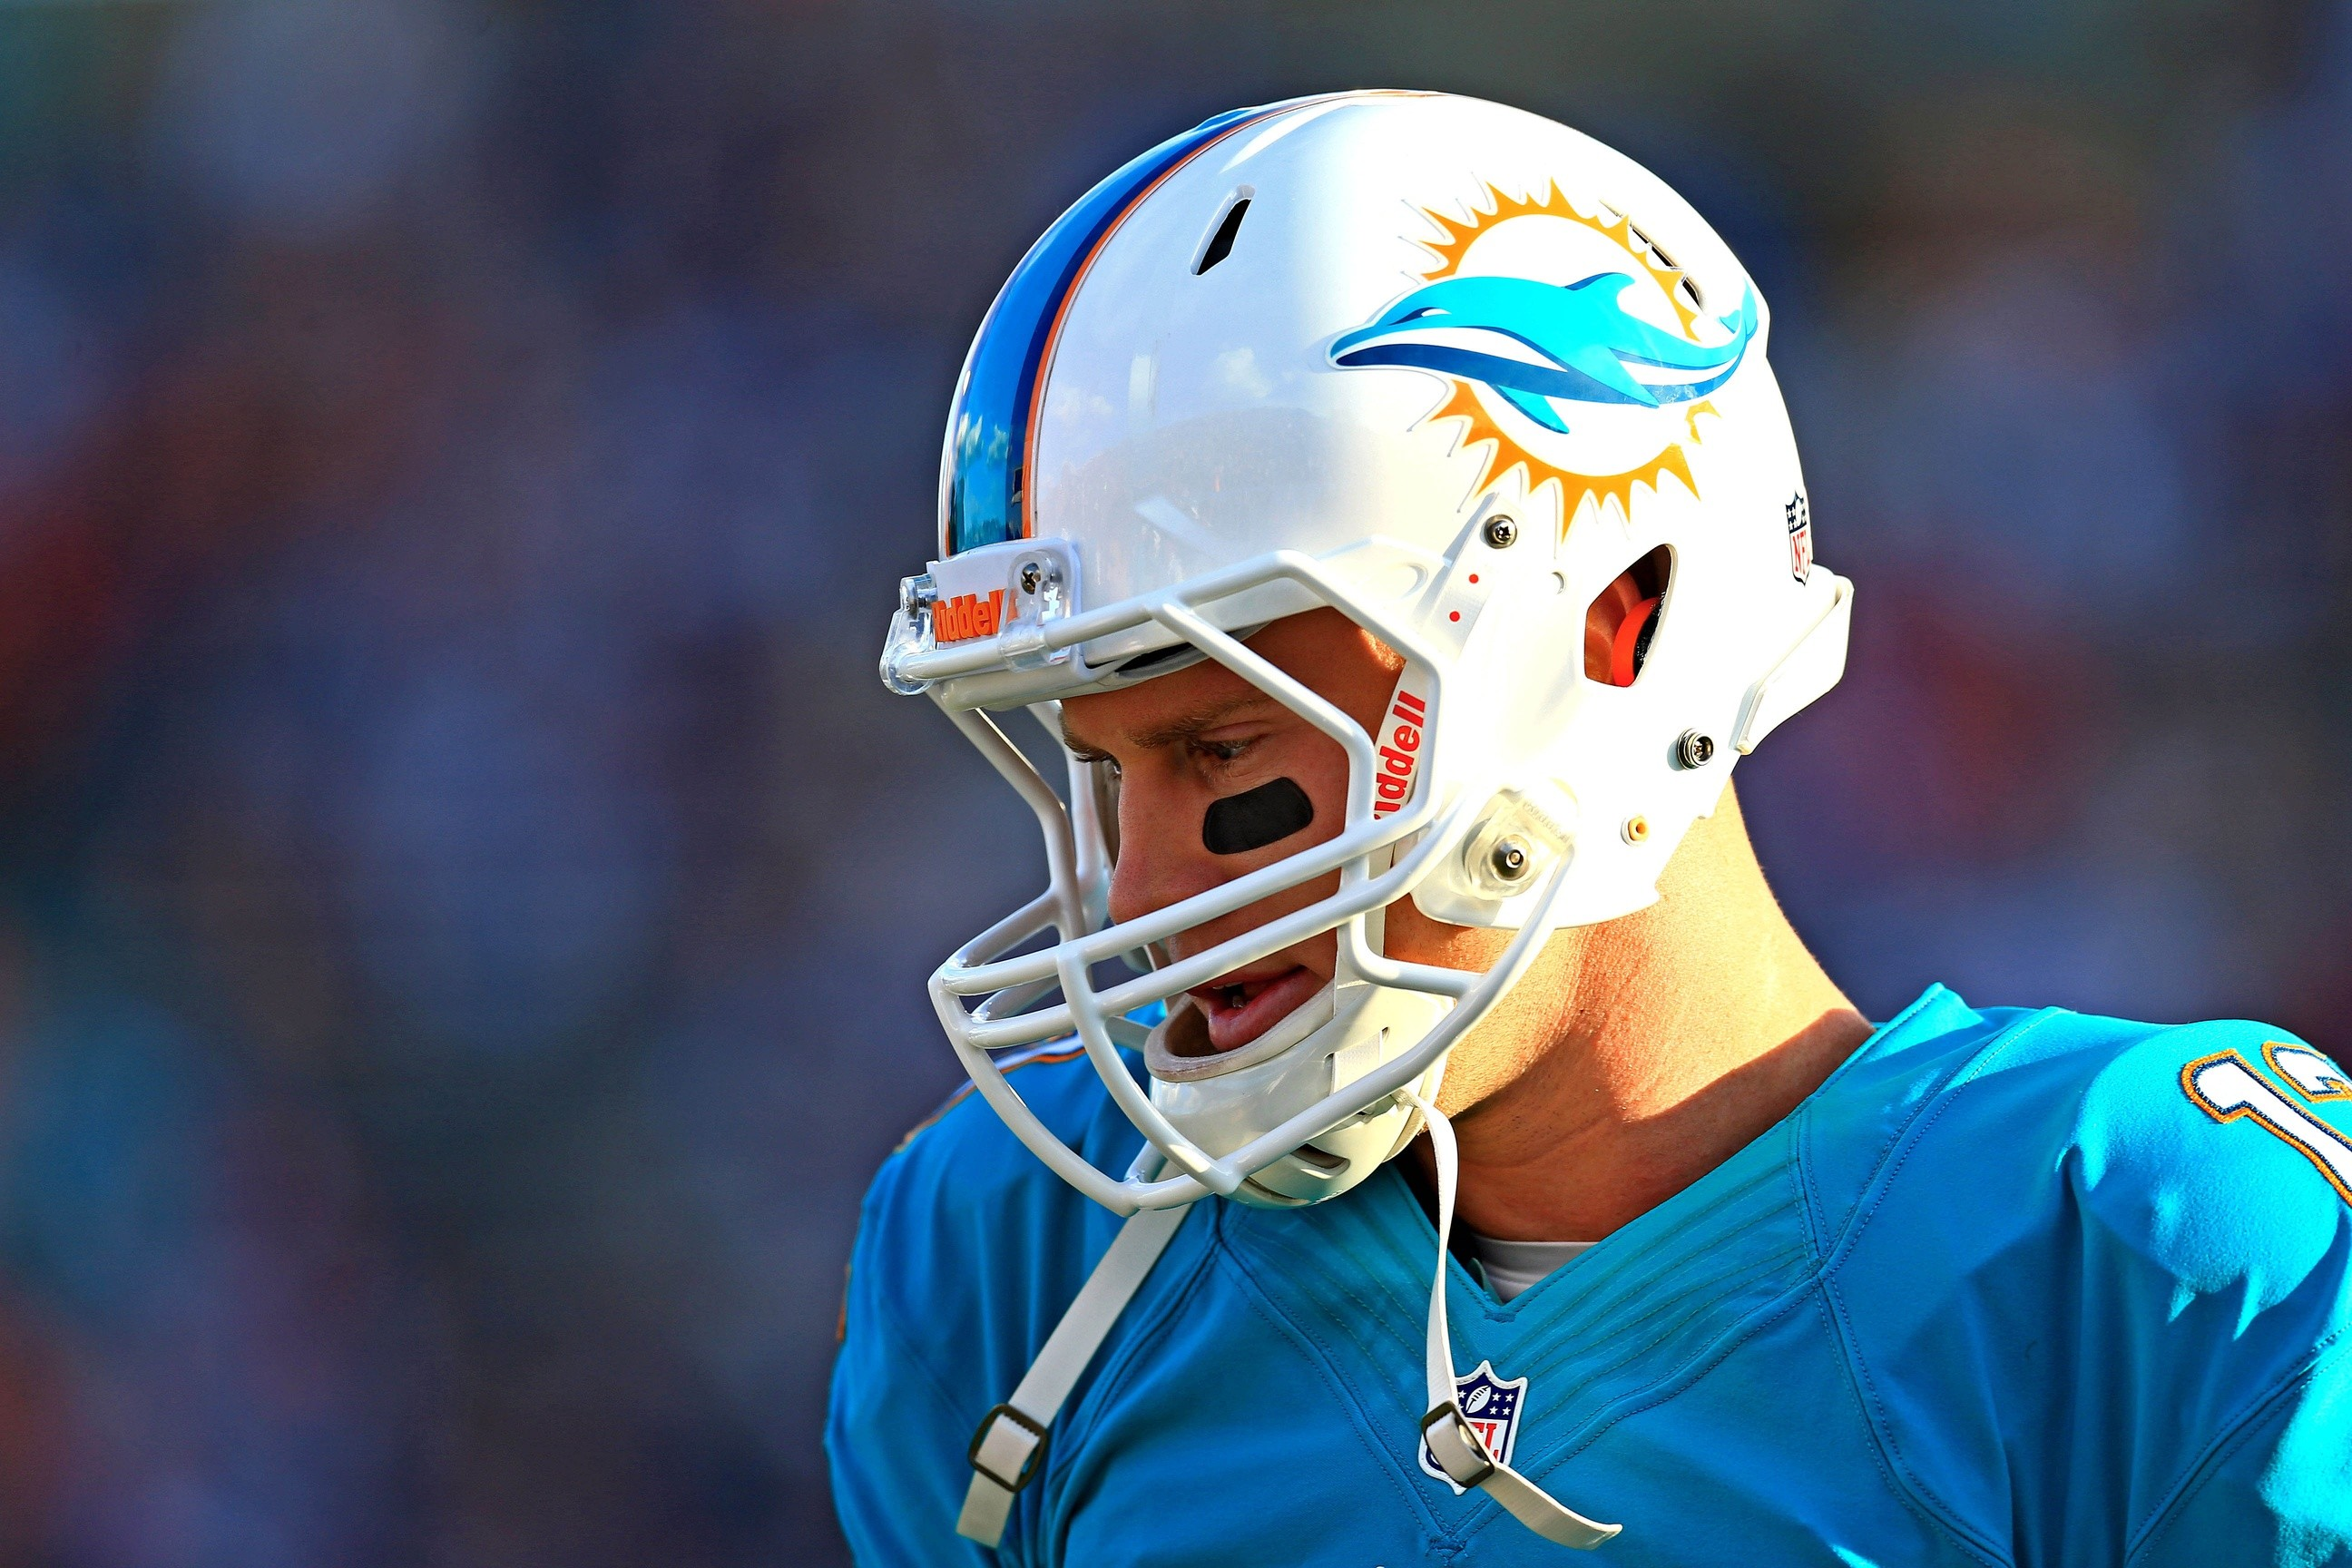 miami dolphins nfl football wallpapers hd free amazing cool tablet smart  phone 4k high definition 2592×1728